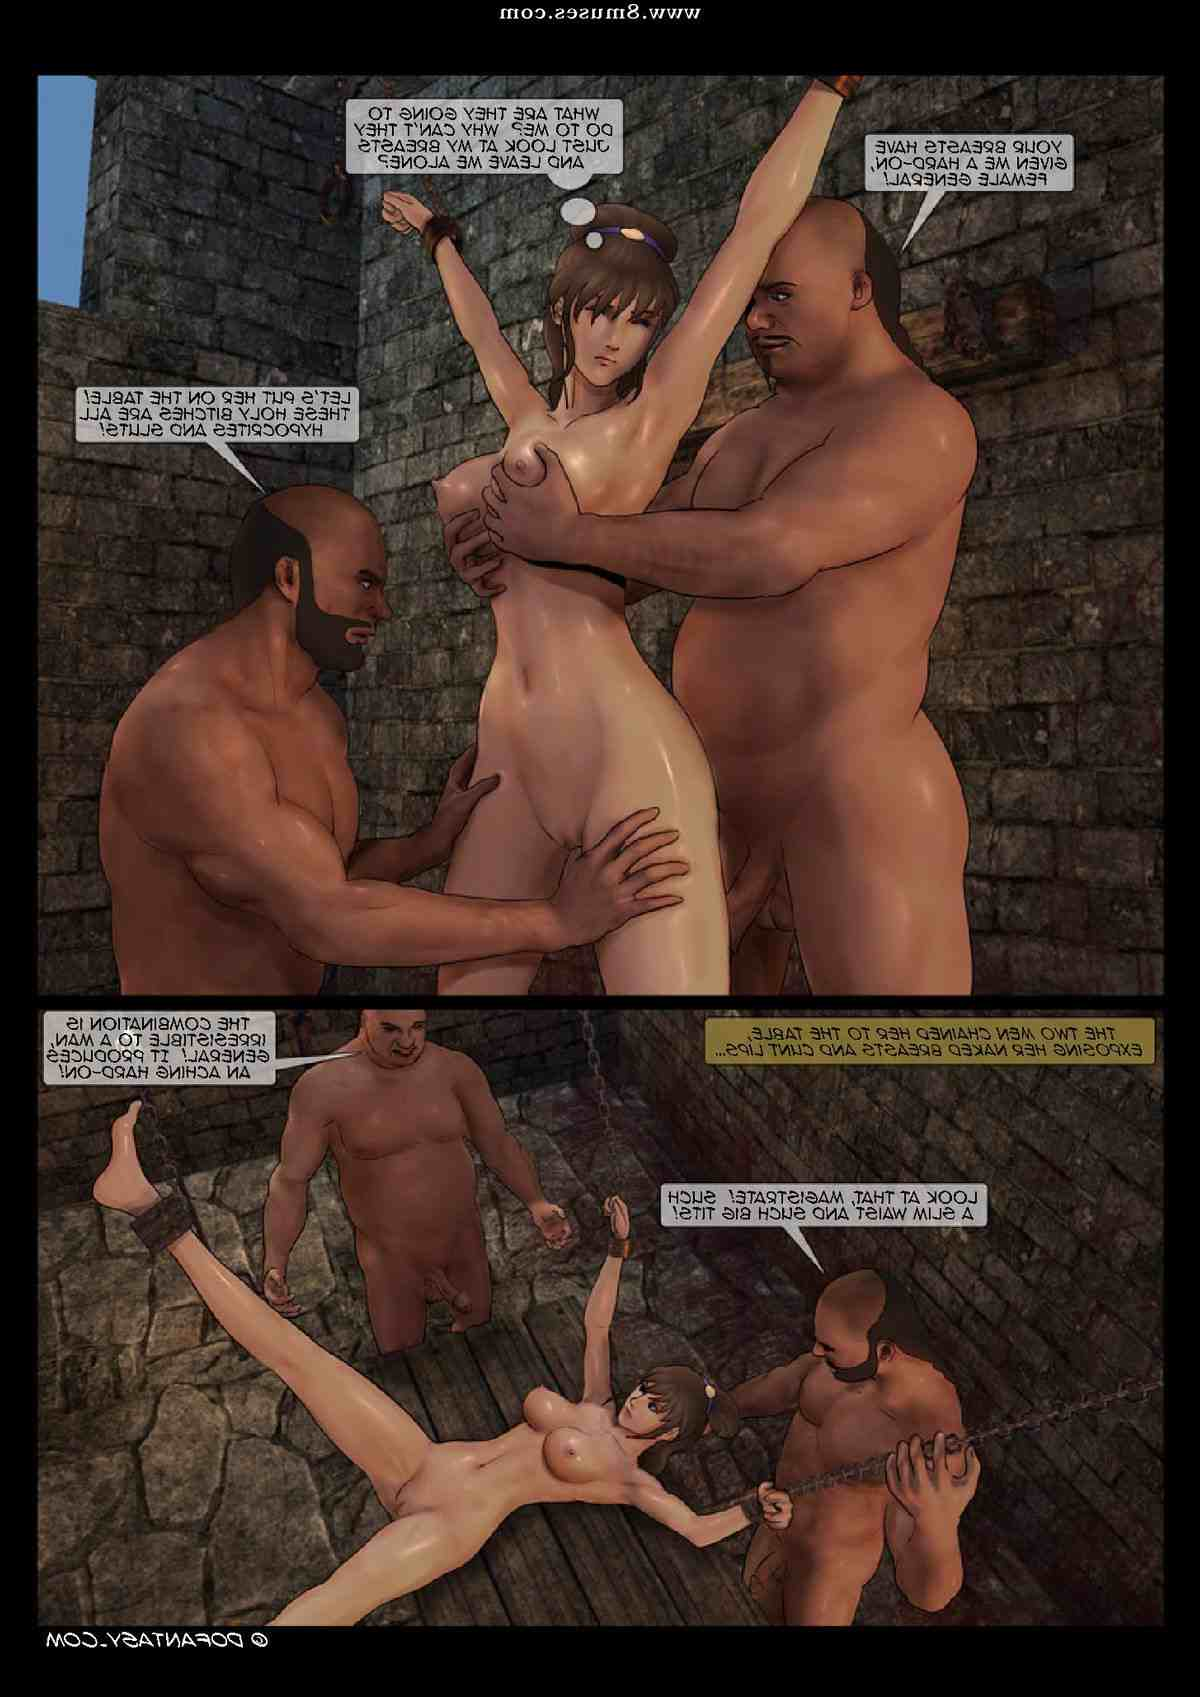 Fansadox-Comics/401-500/Fansadox-412-Feather-Female-General-2 Fansadox_412_-_Feather_-_Female_General_2__8muses_-_Sex_and_Porn_Comics_25.jpg